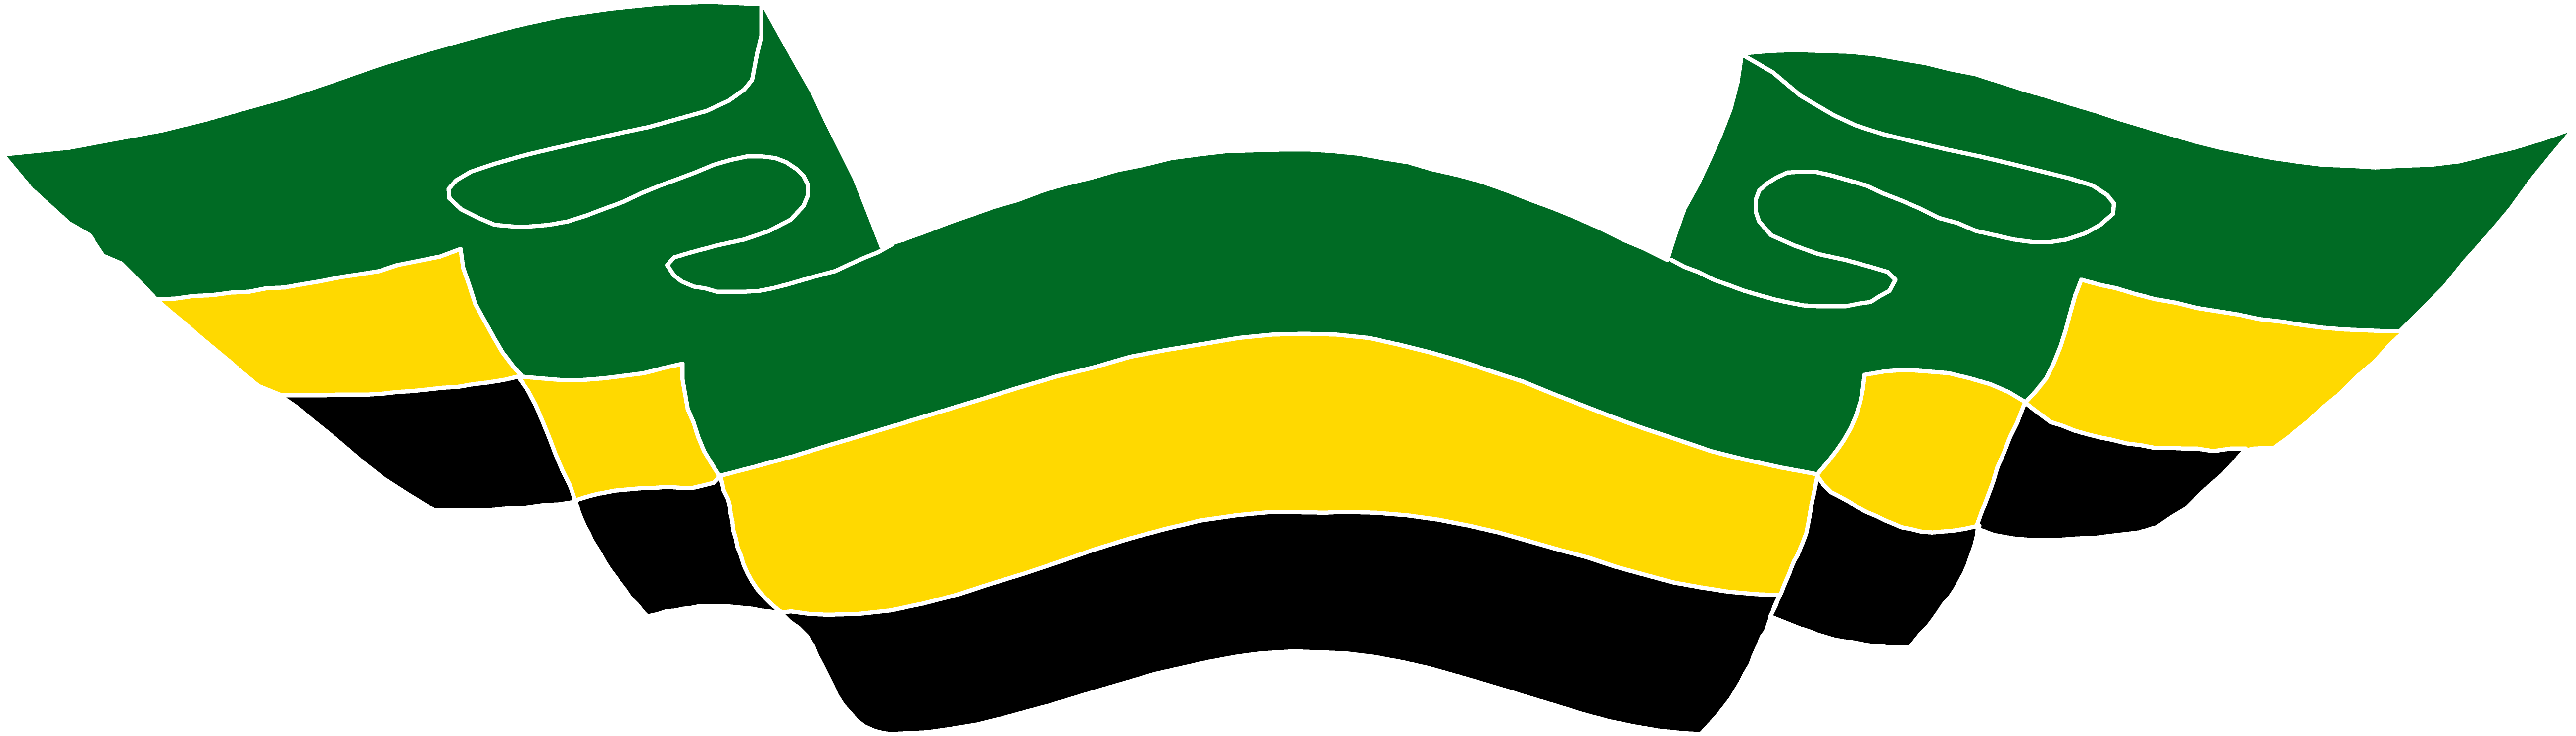 Free Jamaican Flag Cliparts, Download Free Clip Art, Free Clip Art.